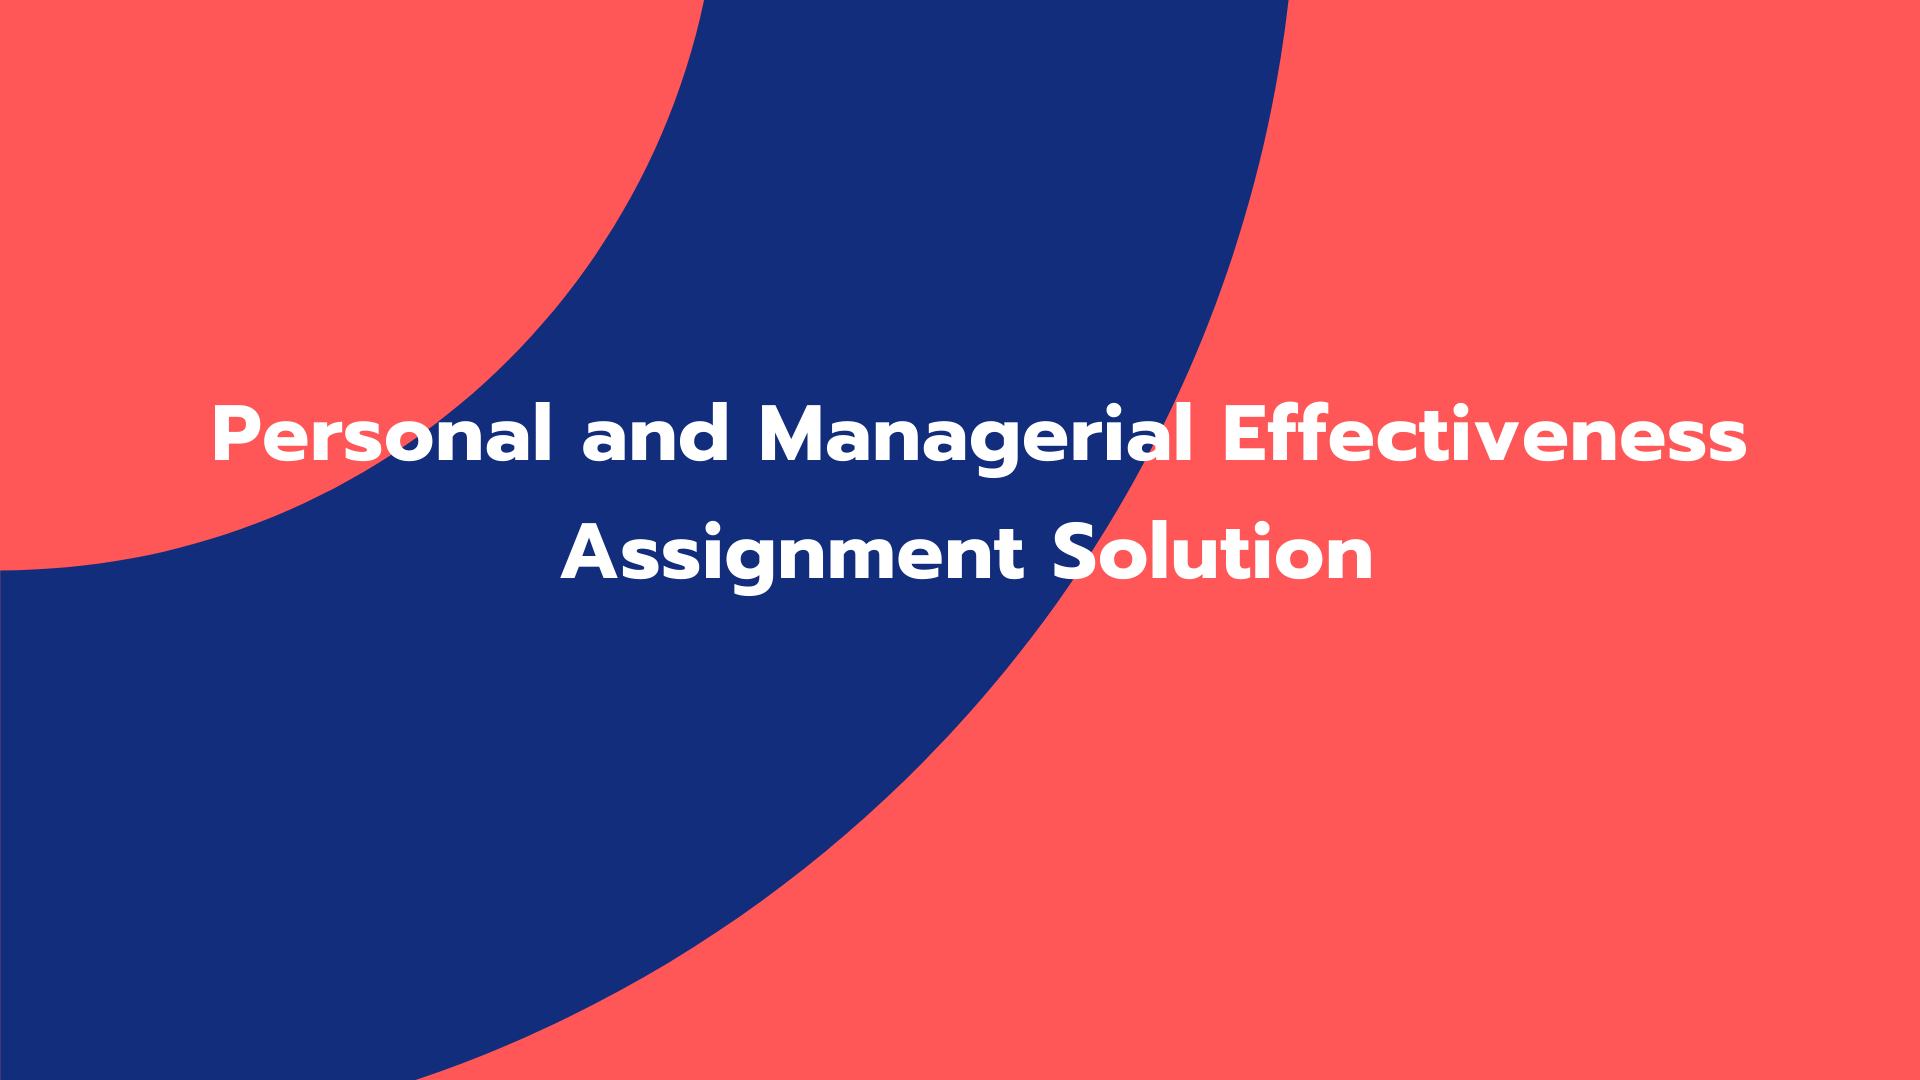 Personal and Managerial Effectiveness Assignment Solution